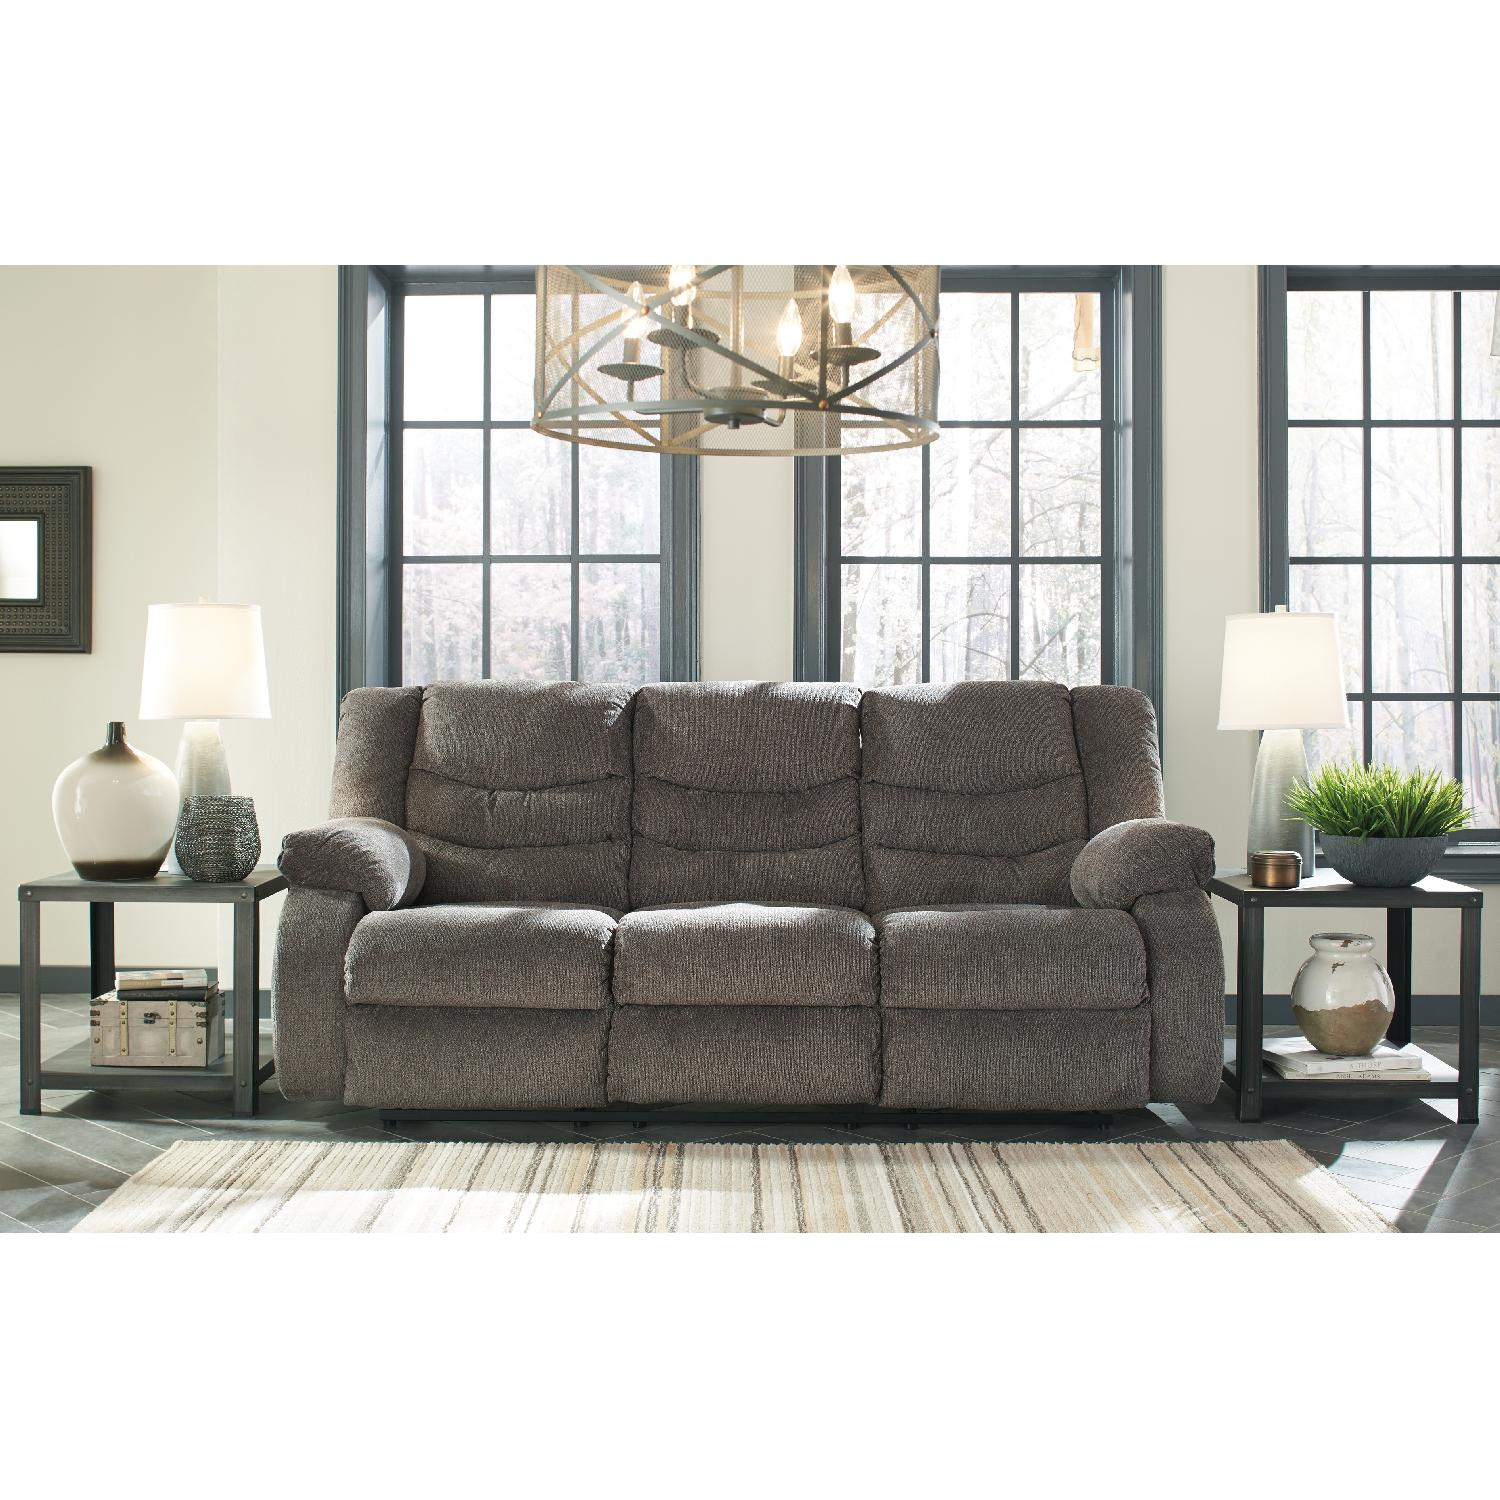 ... Ashley\u0027s Tulen Contemporary Reclining Sofa in Fabric Gray-3 ...  sc 1 st  AptDeco & Ashley\u0027s Tulen Contemporary Reclining Sofa in Fabric - AptDeco islam-shia.org